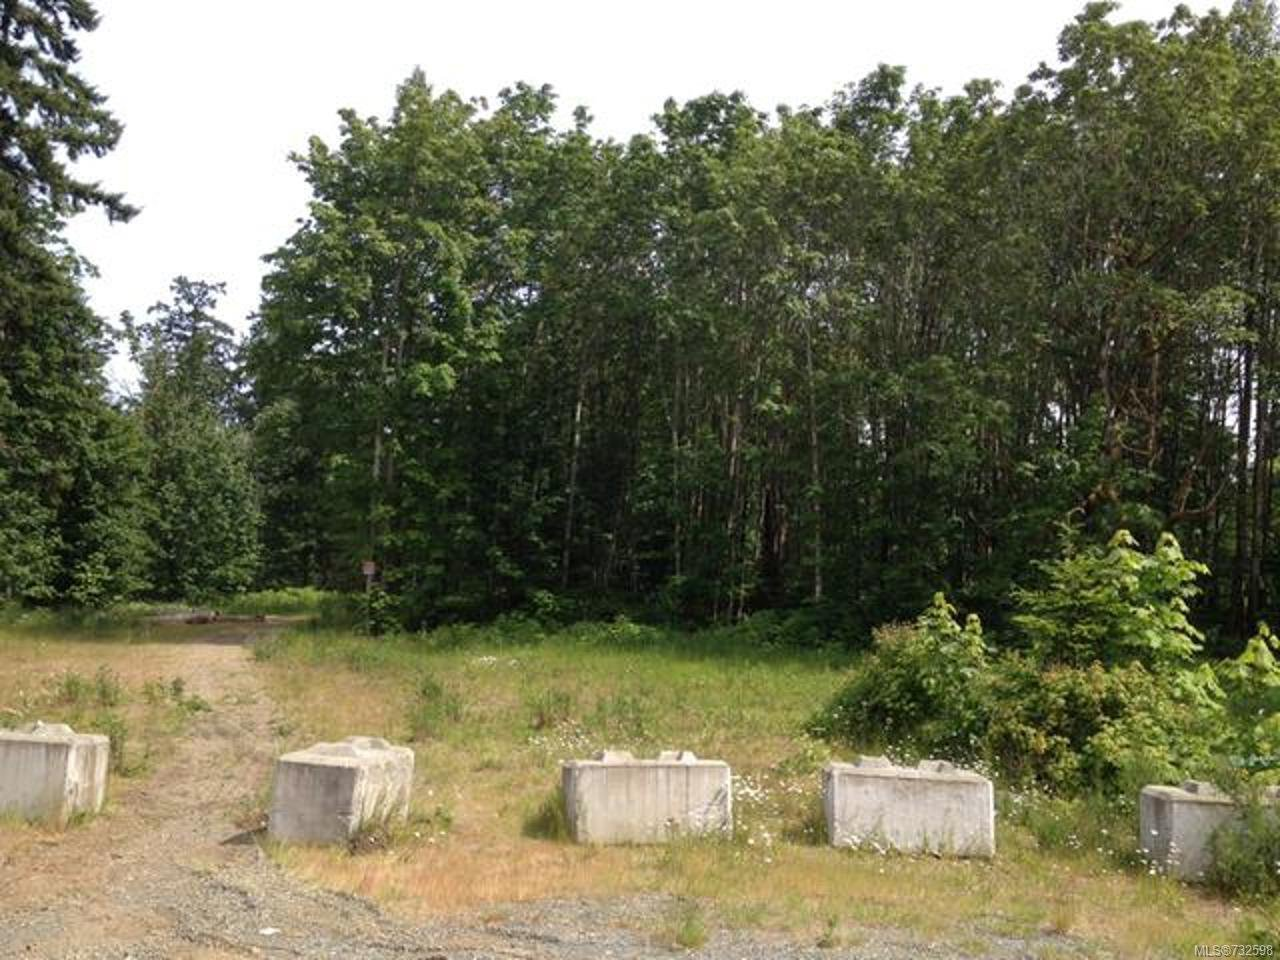 Main Photo: LT 11 Cameron Rd in COURTENAY: CV Courtenay South Land for sale (Comox Valley)  : MLS®# 732598